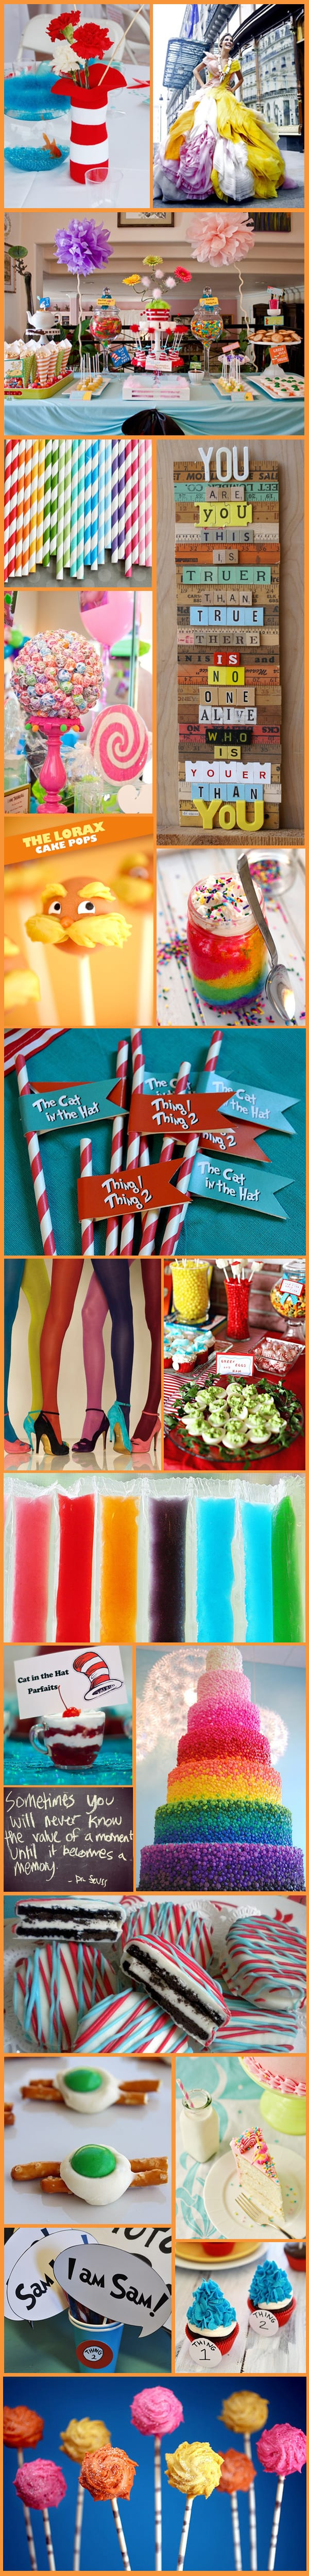 Dr Seuss Inspiration Board